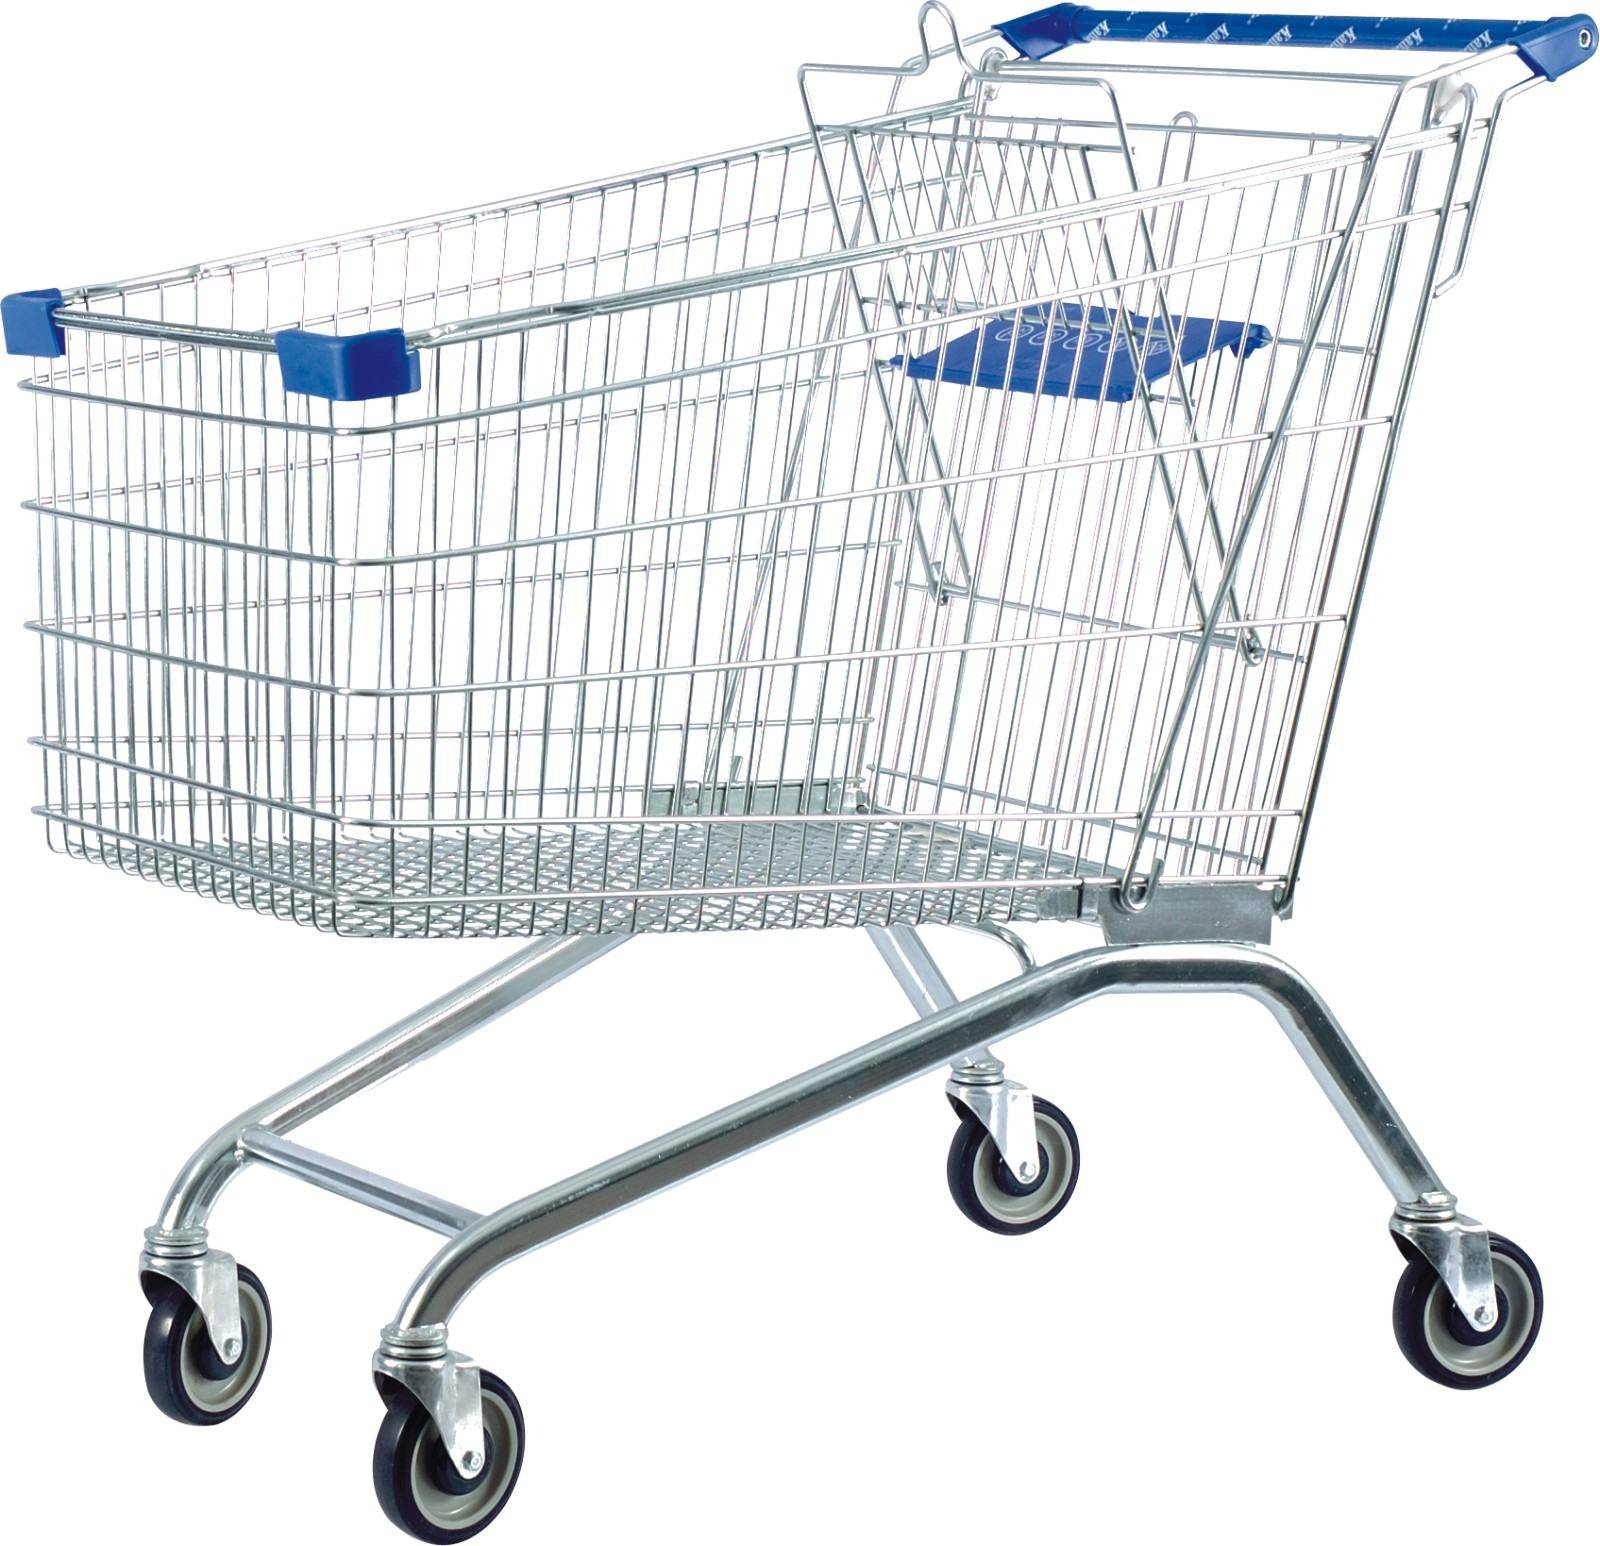 European style lowest price supermarket shopping cart trolley